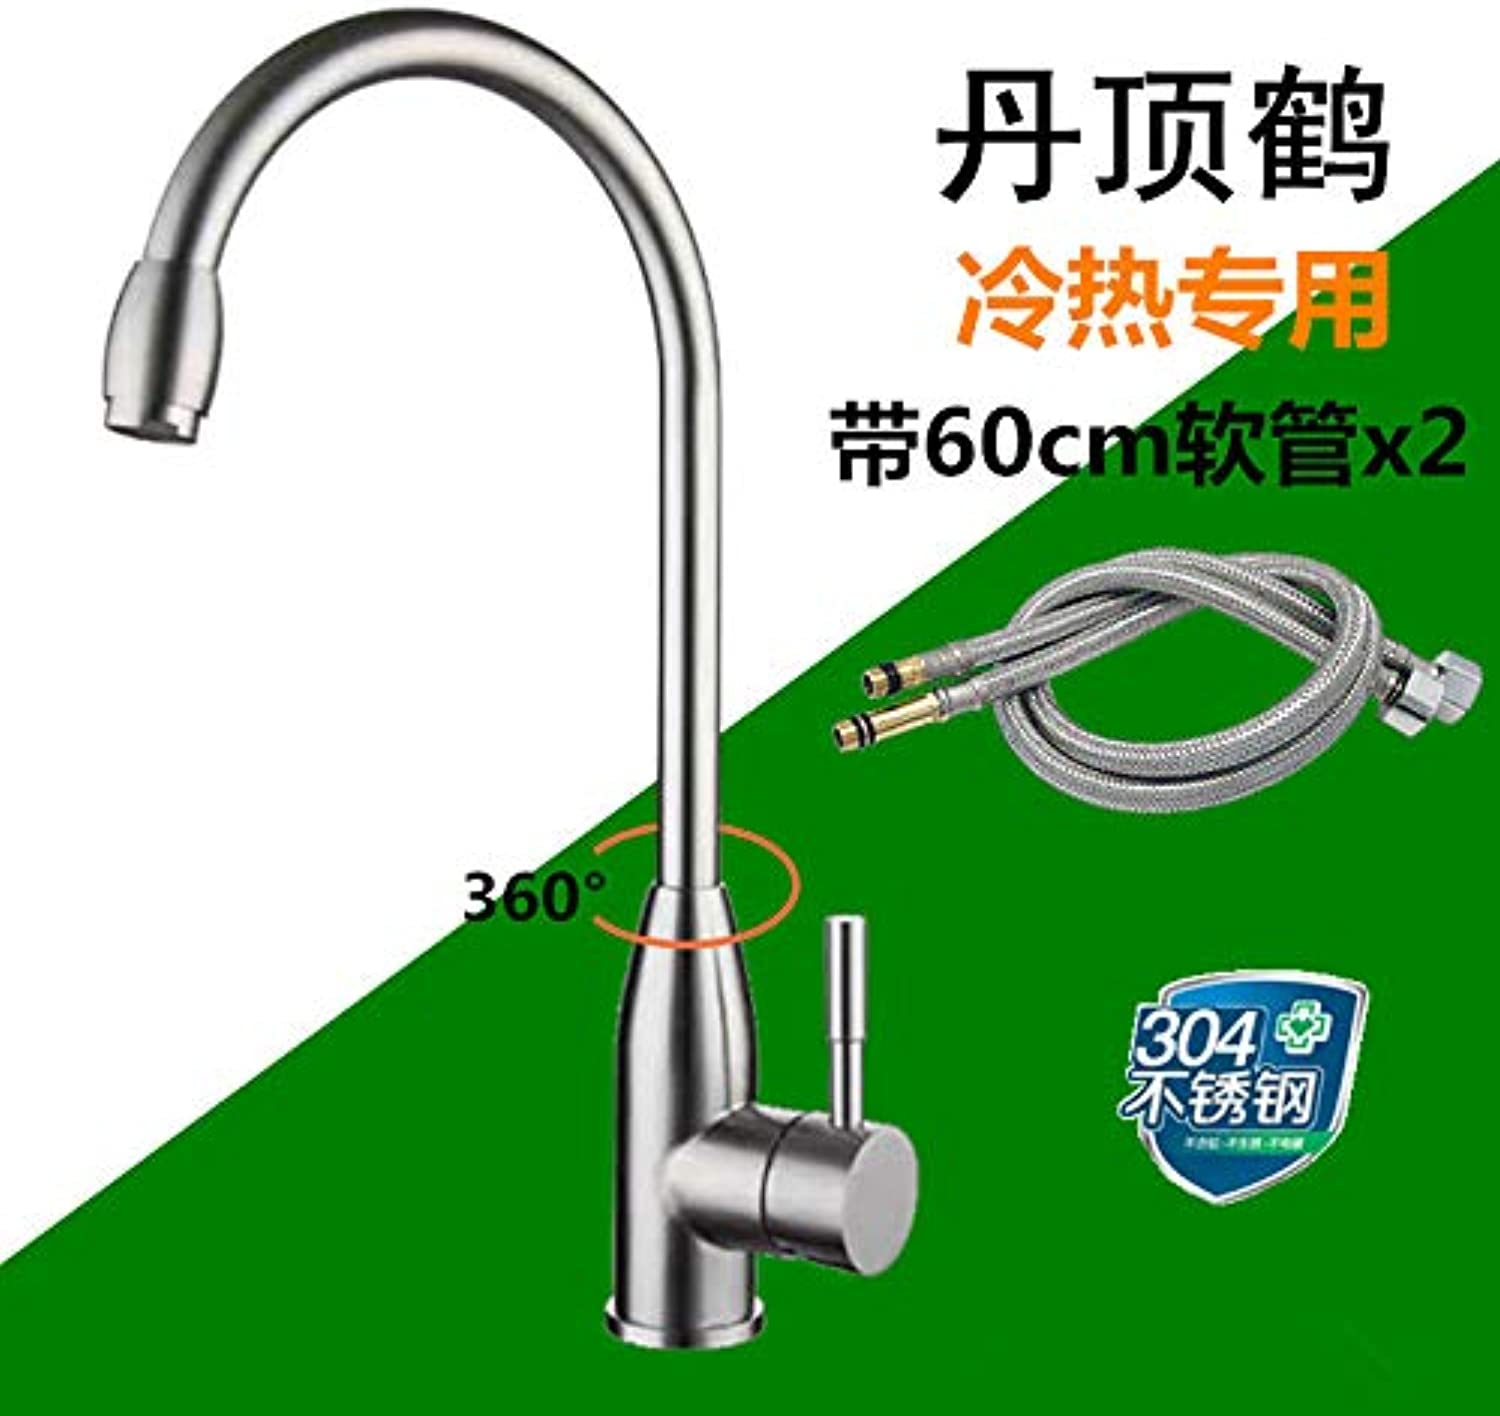 JWLT faucets 304 Stainless Steel Dish Basin Faucet Kitchen Faucet Single Cold greenical Wall into redary Tank Faucet hot and Cold,[304] Red Crowned Crane Cold 60 Hose